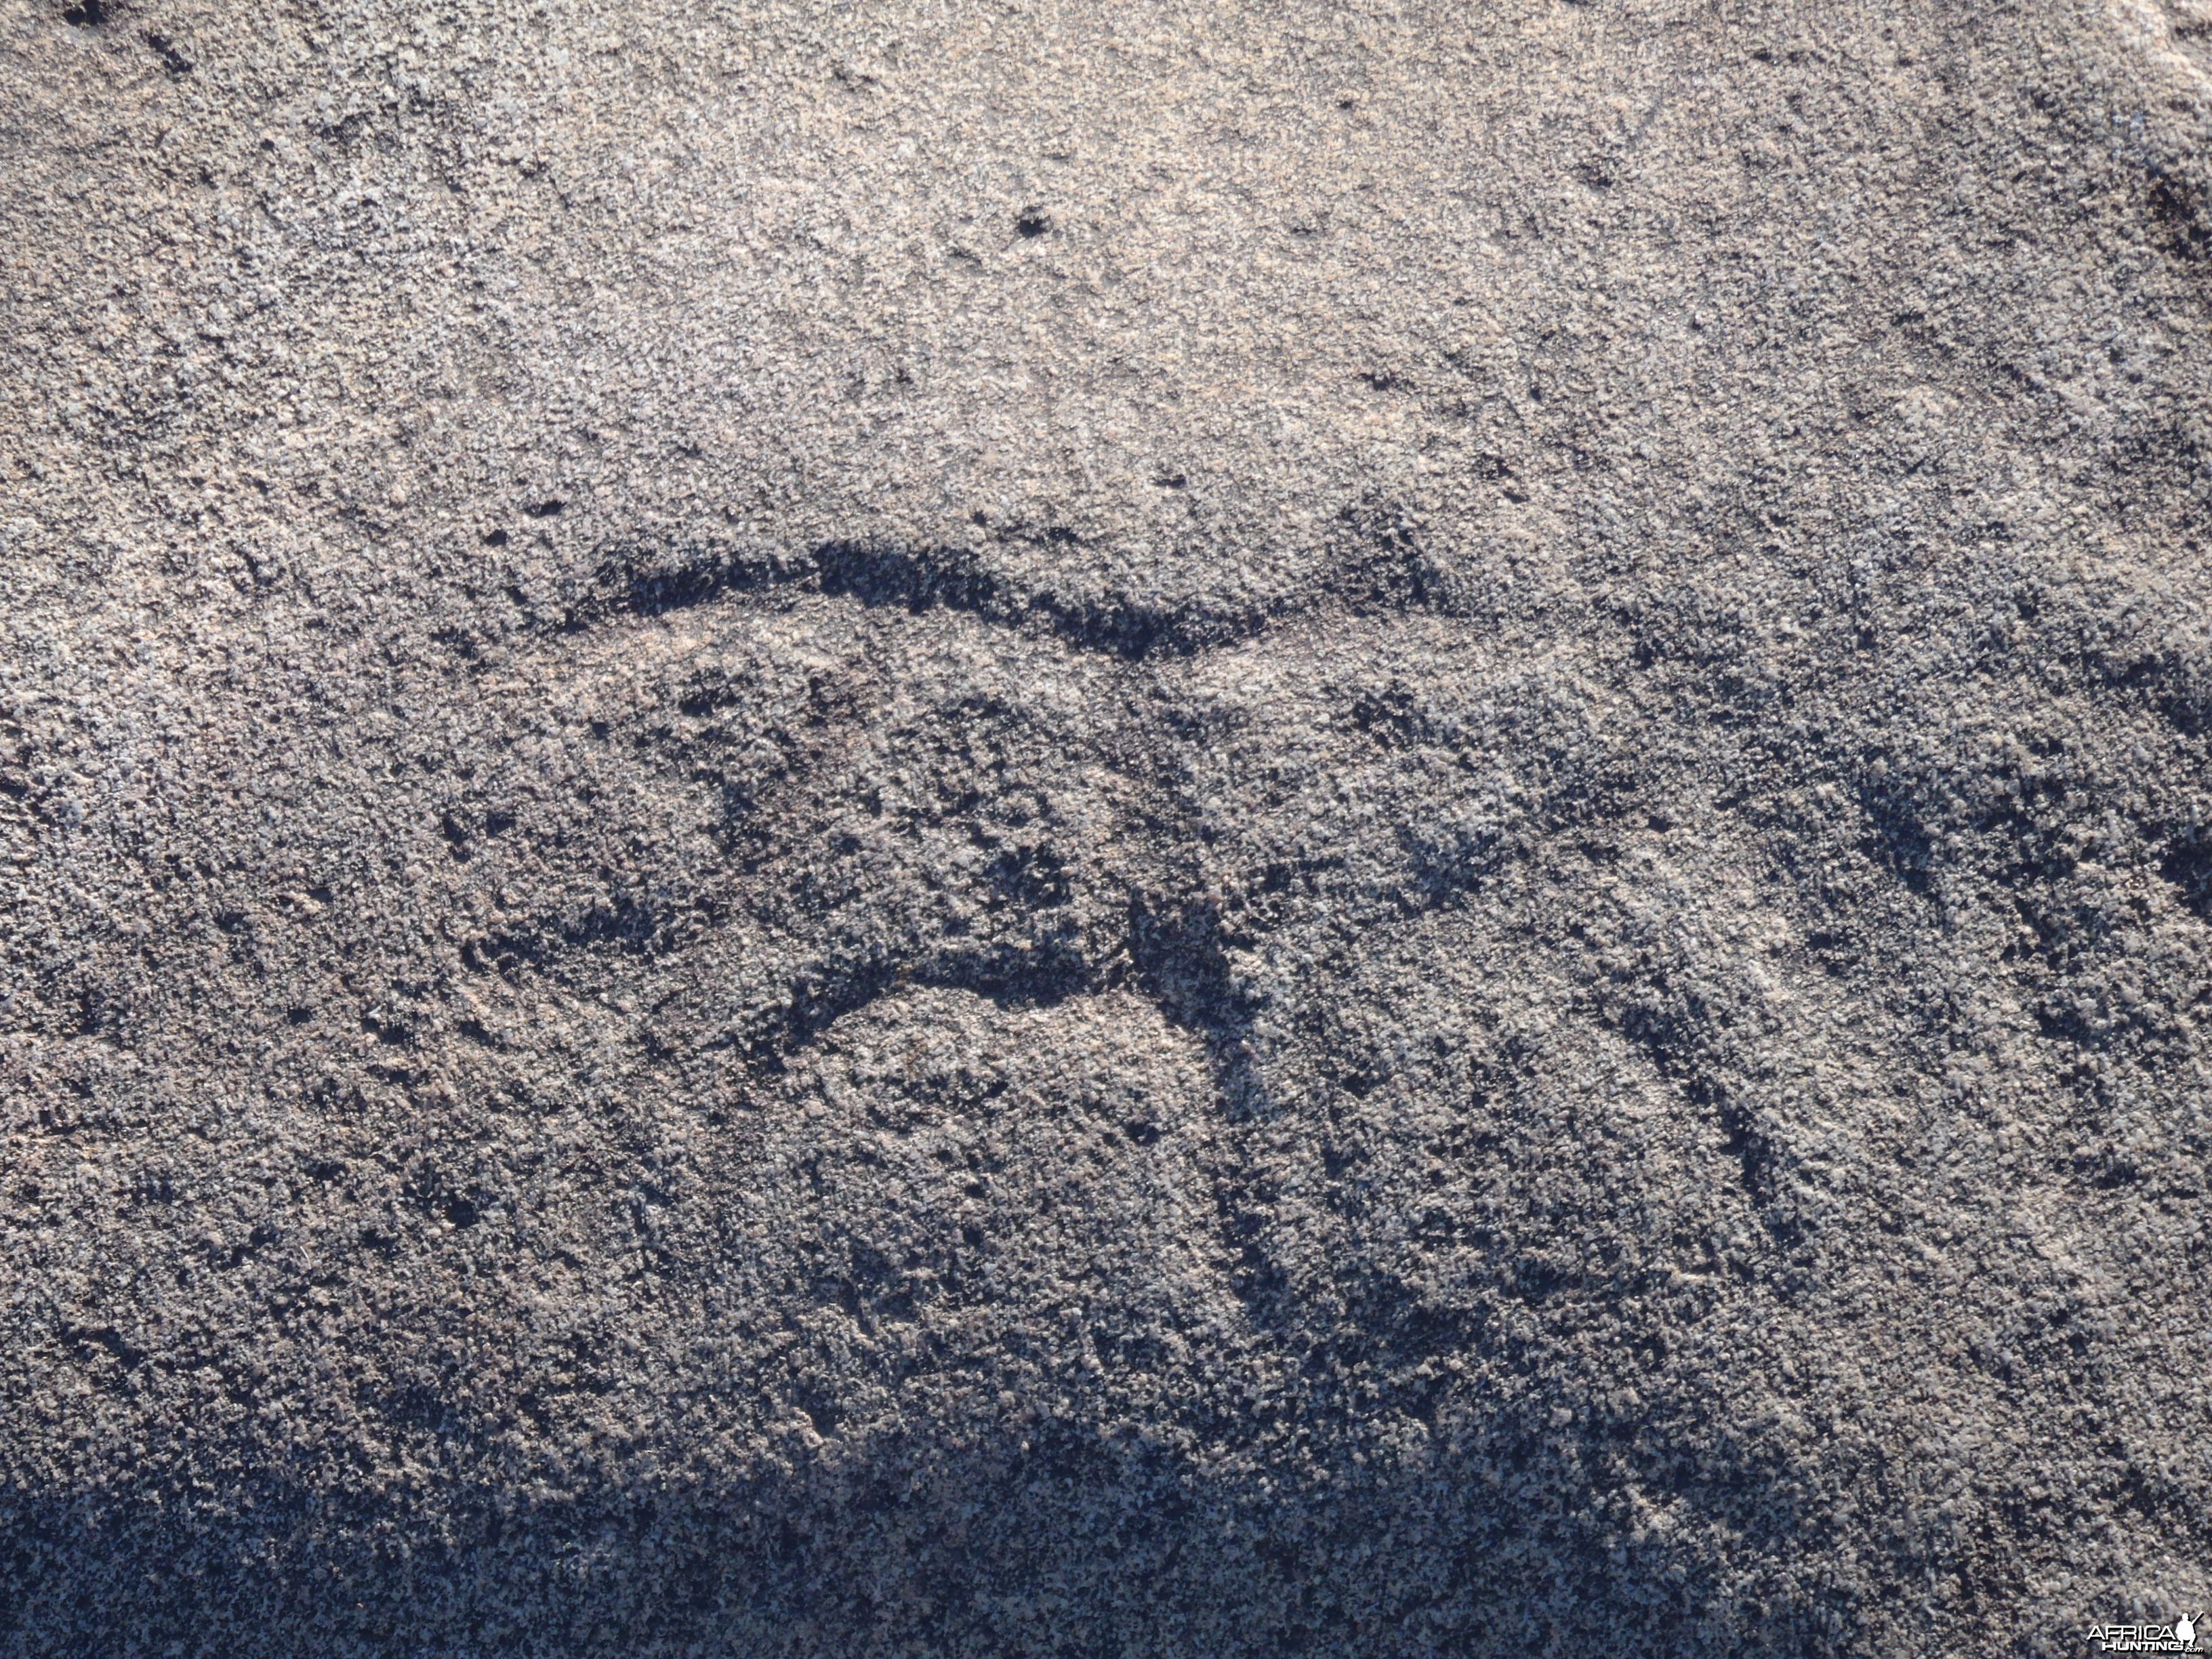 Bushman rock engraving of Warthog in Namibia